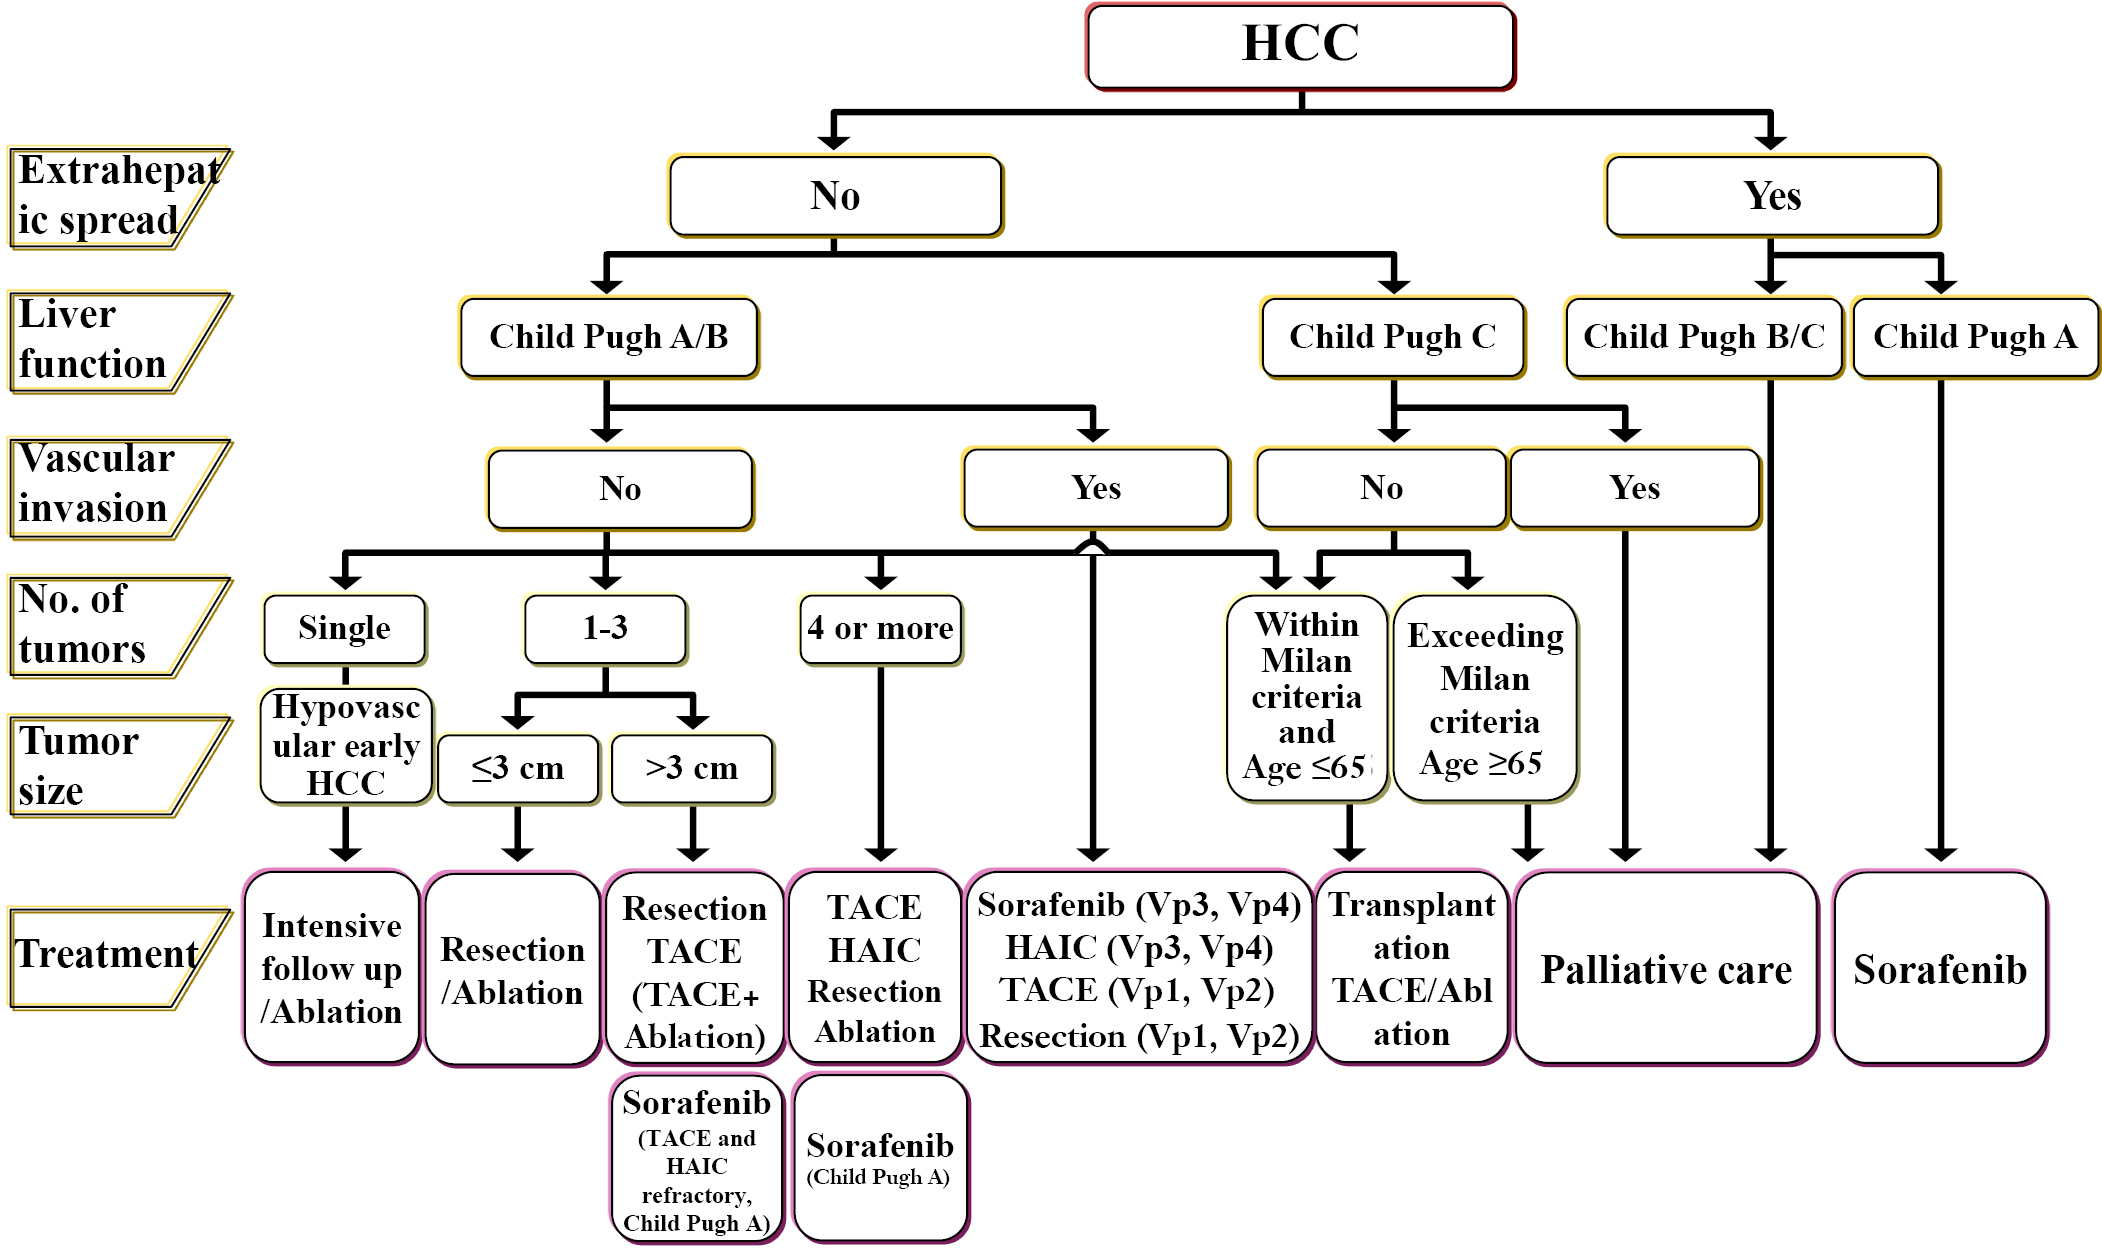 current hep c treatment guidelines